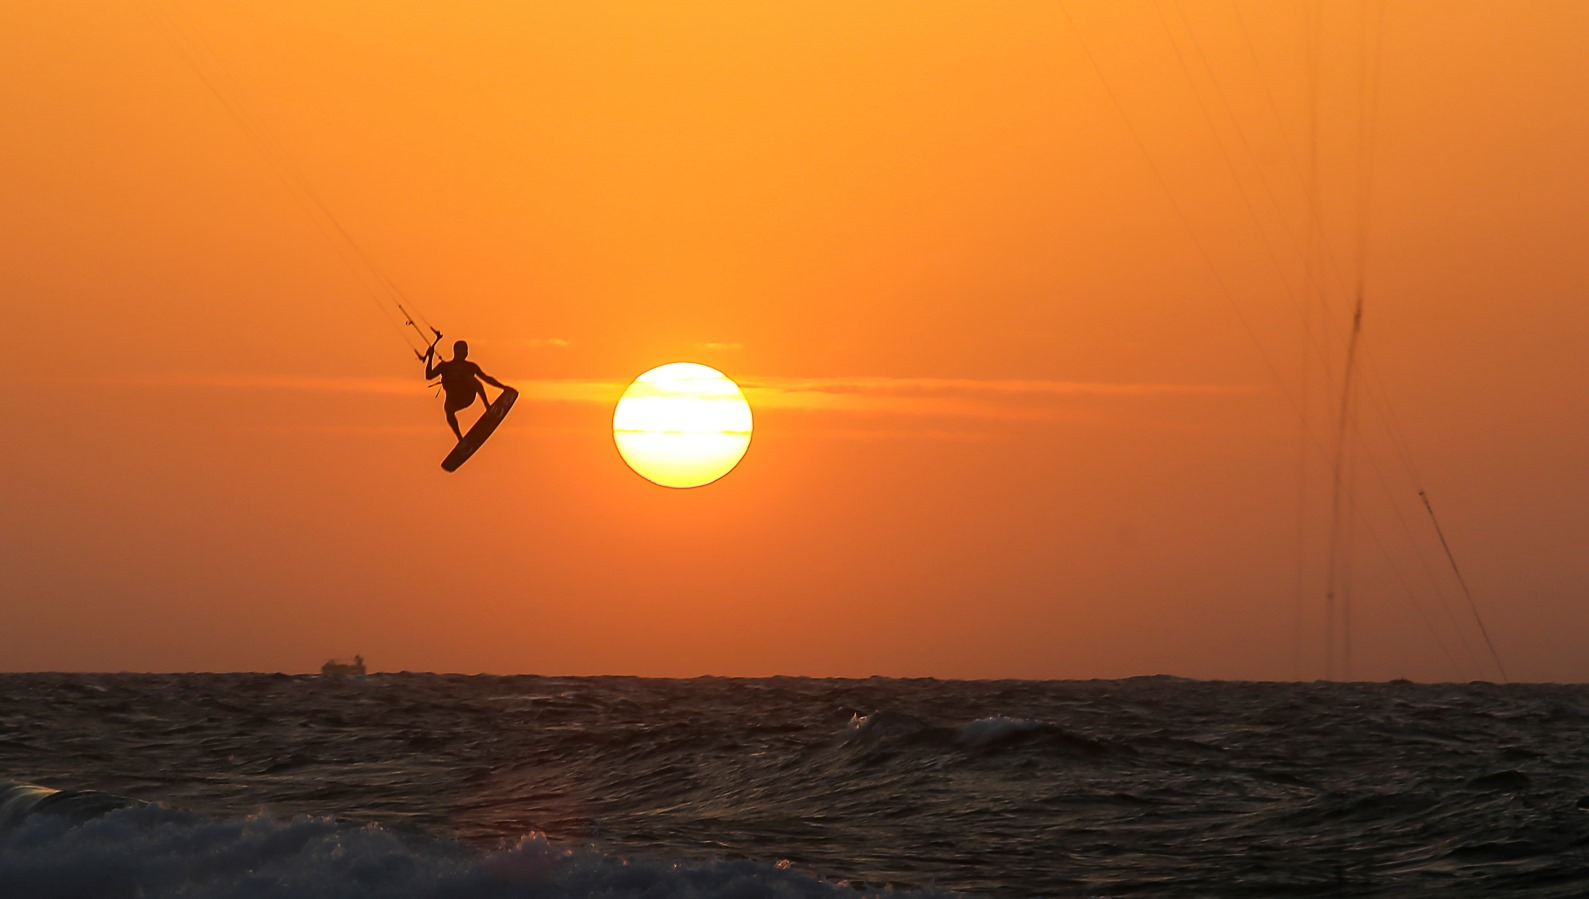 Kite surfers take to the waves at sunset at the Yamia beach in the Israeli city of Ashkelon, November 2, 2015. Photo by Edi Israel/FLASH90